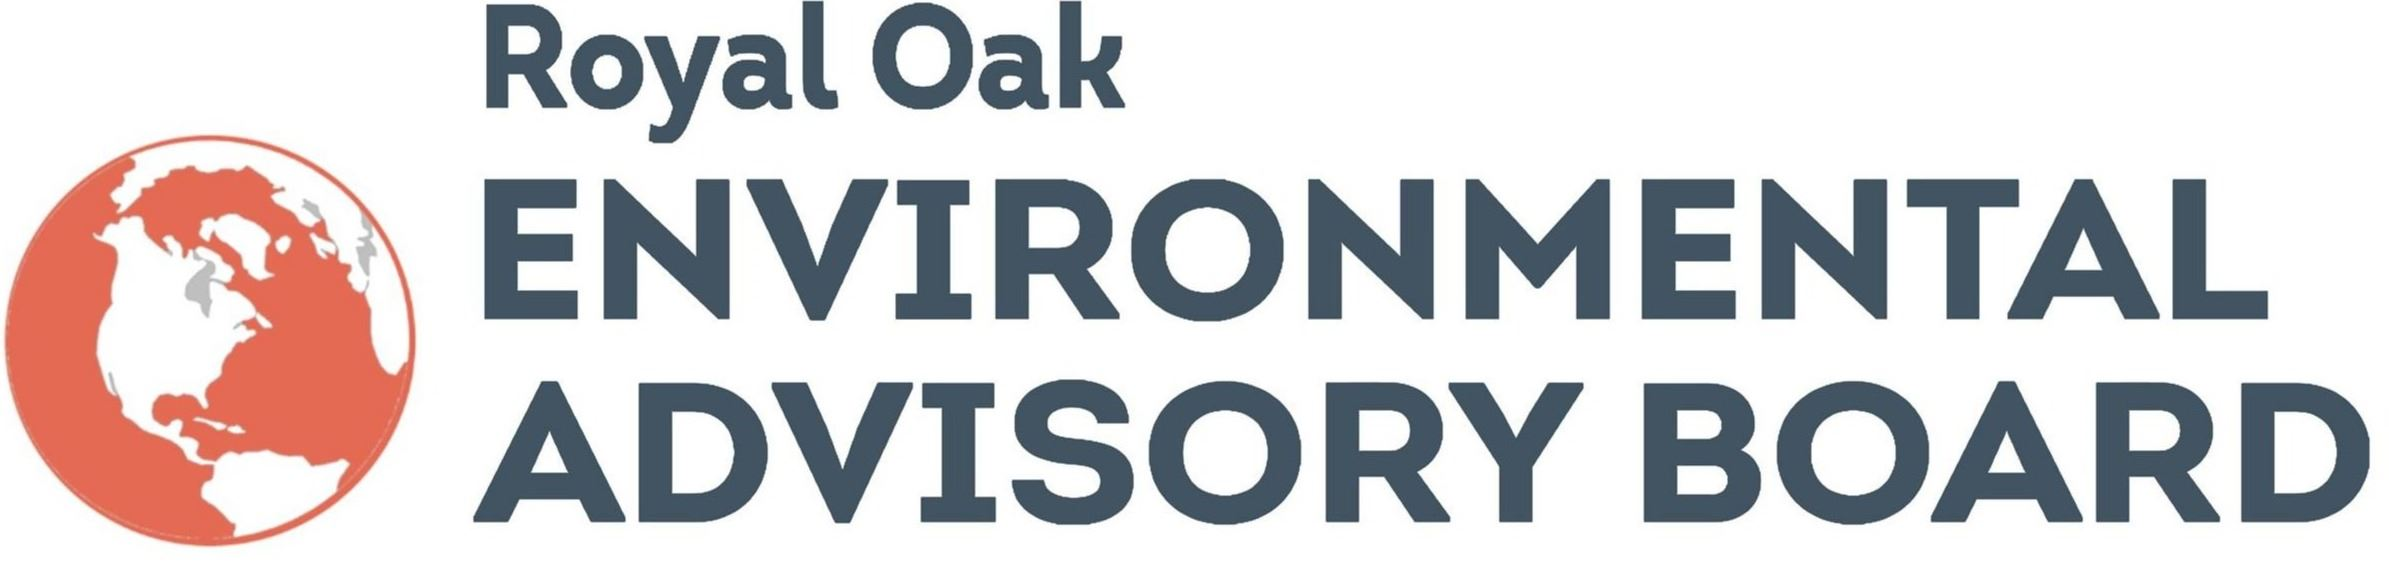 Royal Oak Environmental Advisory Board